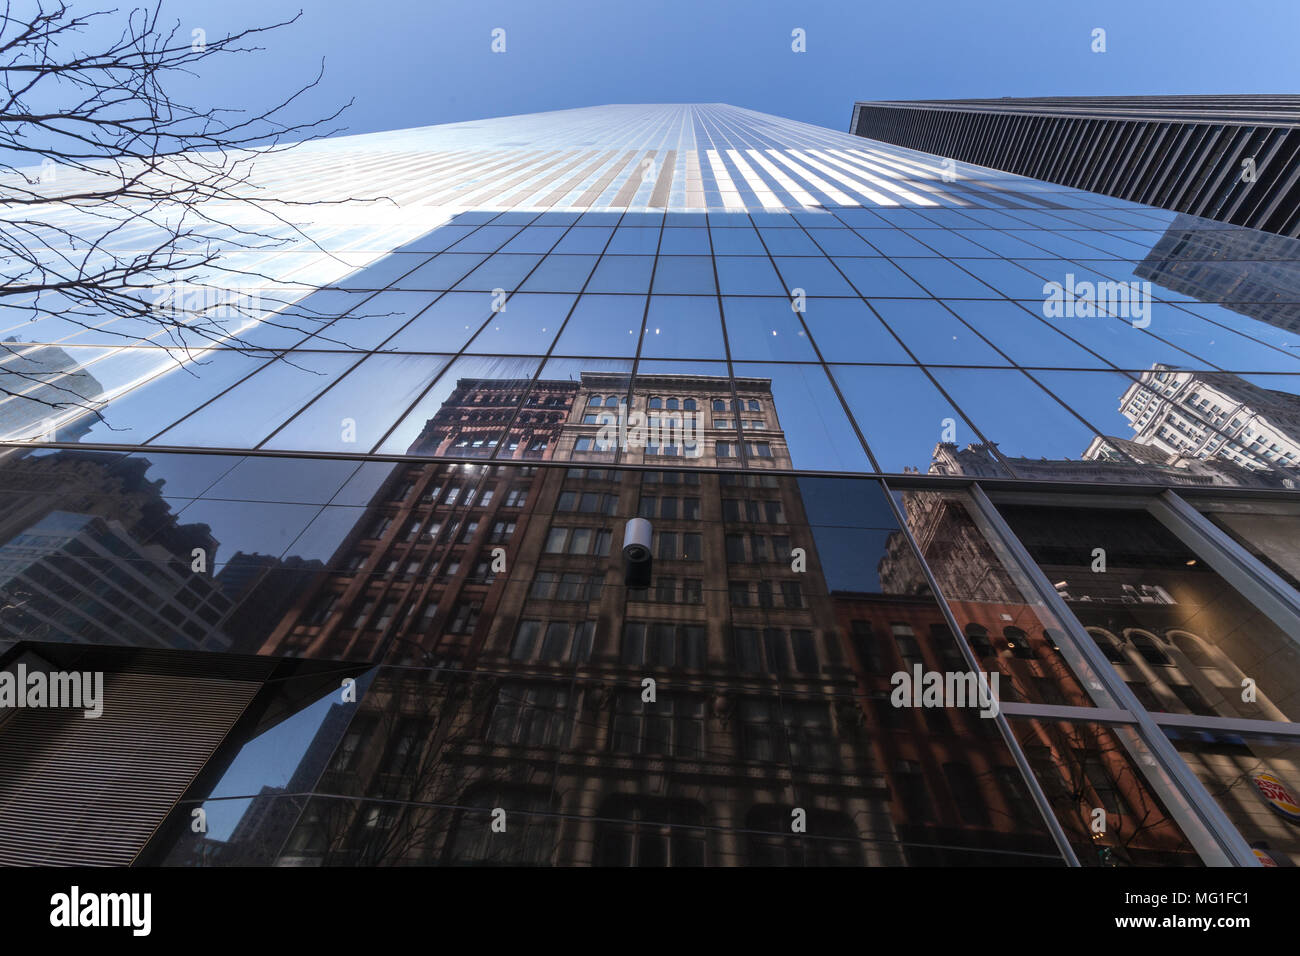 4 World Trade Center in lower Manhattan, New York, NY - Stock Image